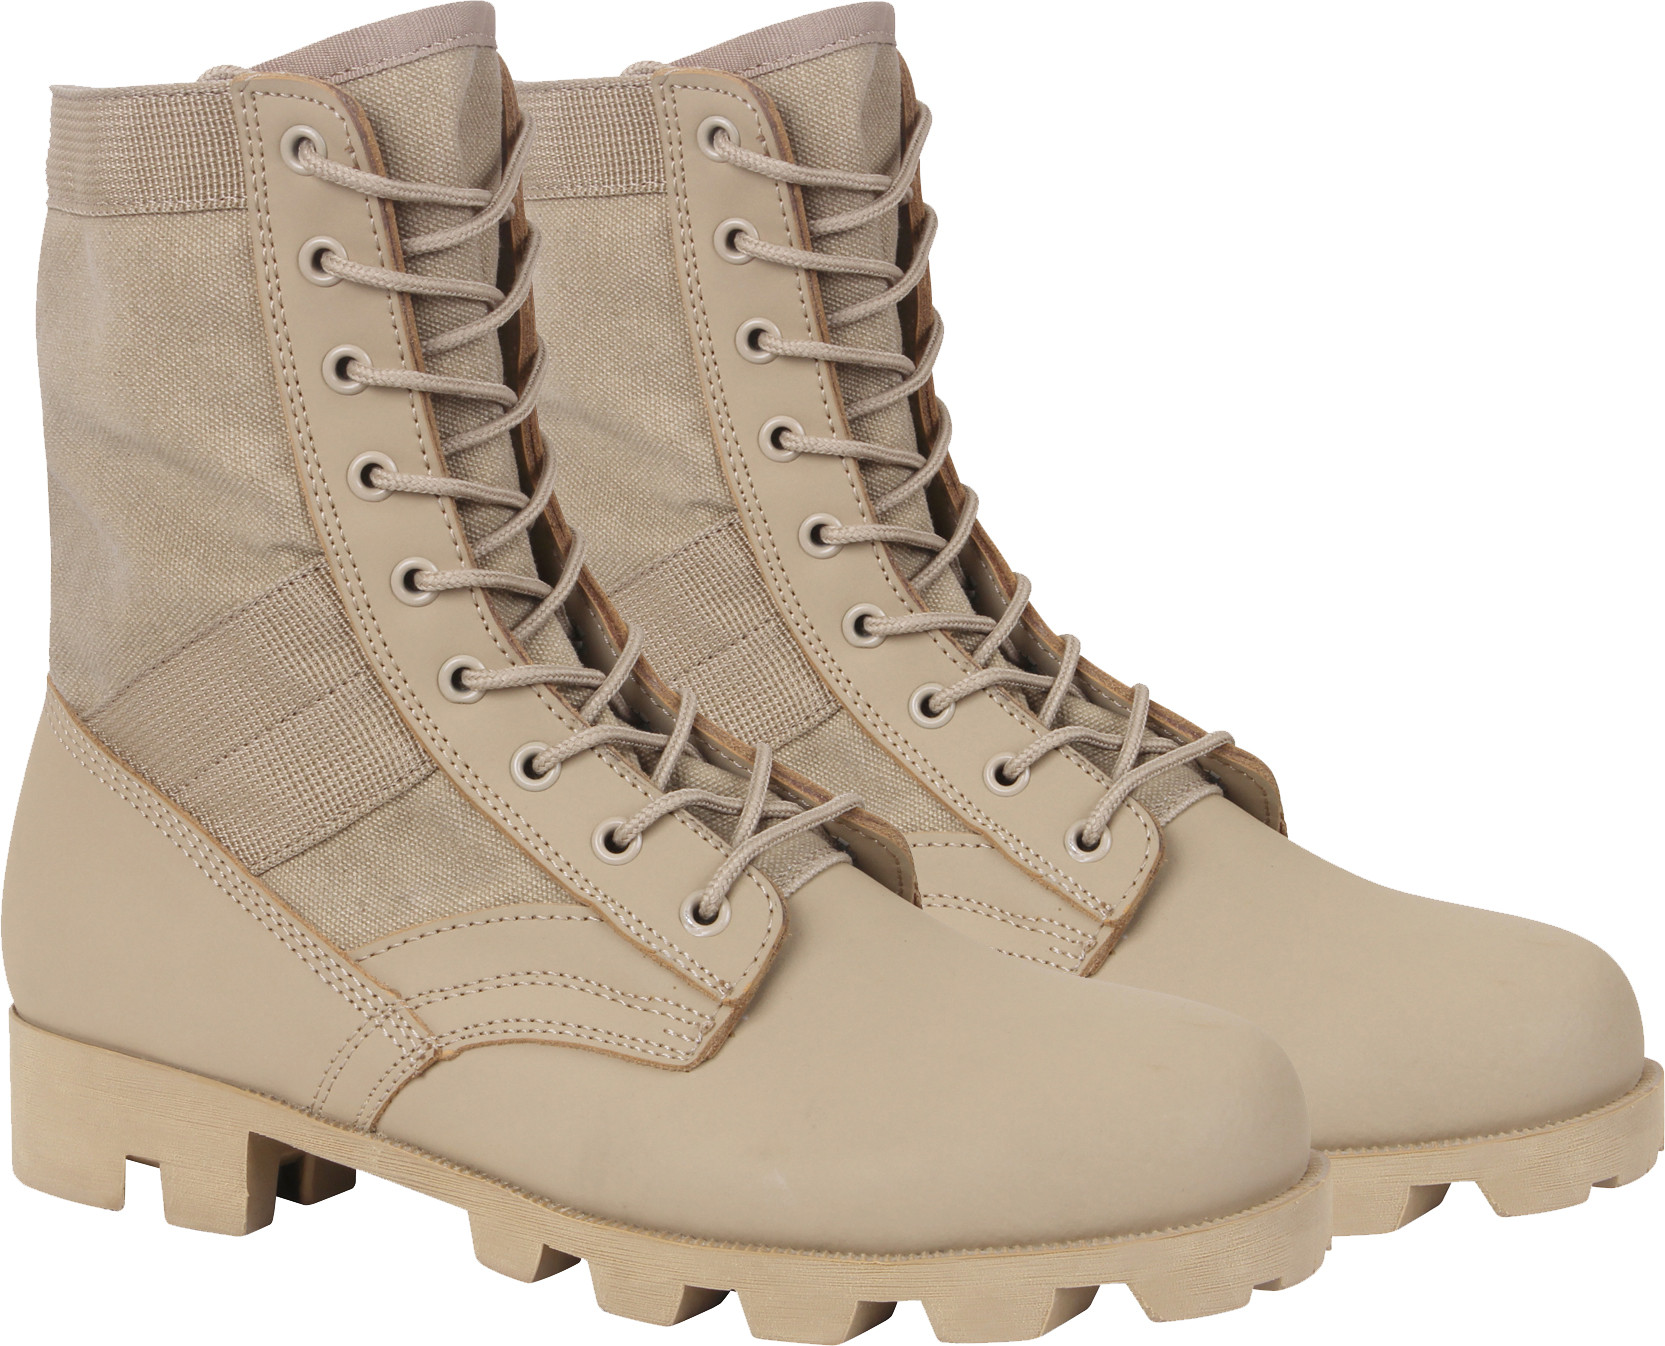 More Views. Desert Sand Leather Panama Sole Military Combat Jungle Boots ... 99f9e57dcc4